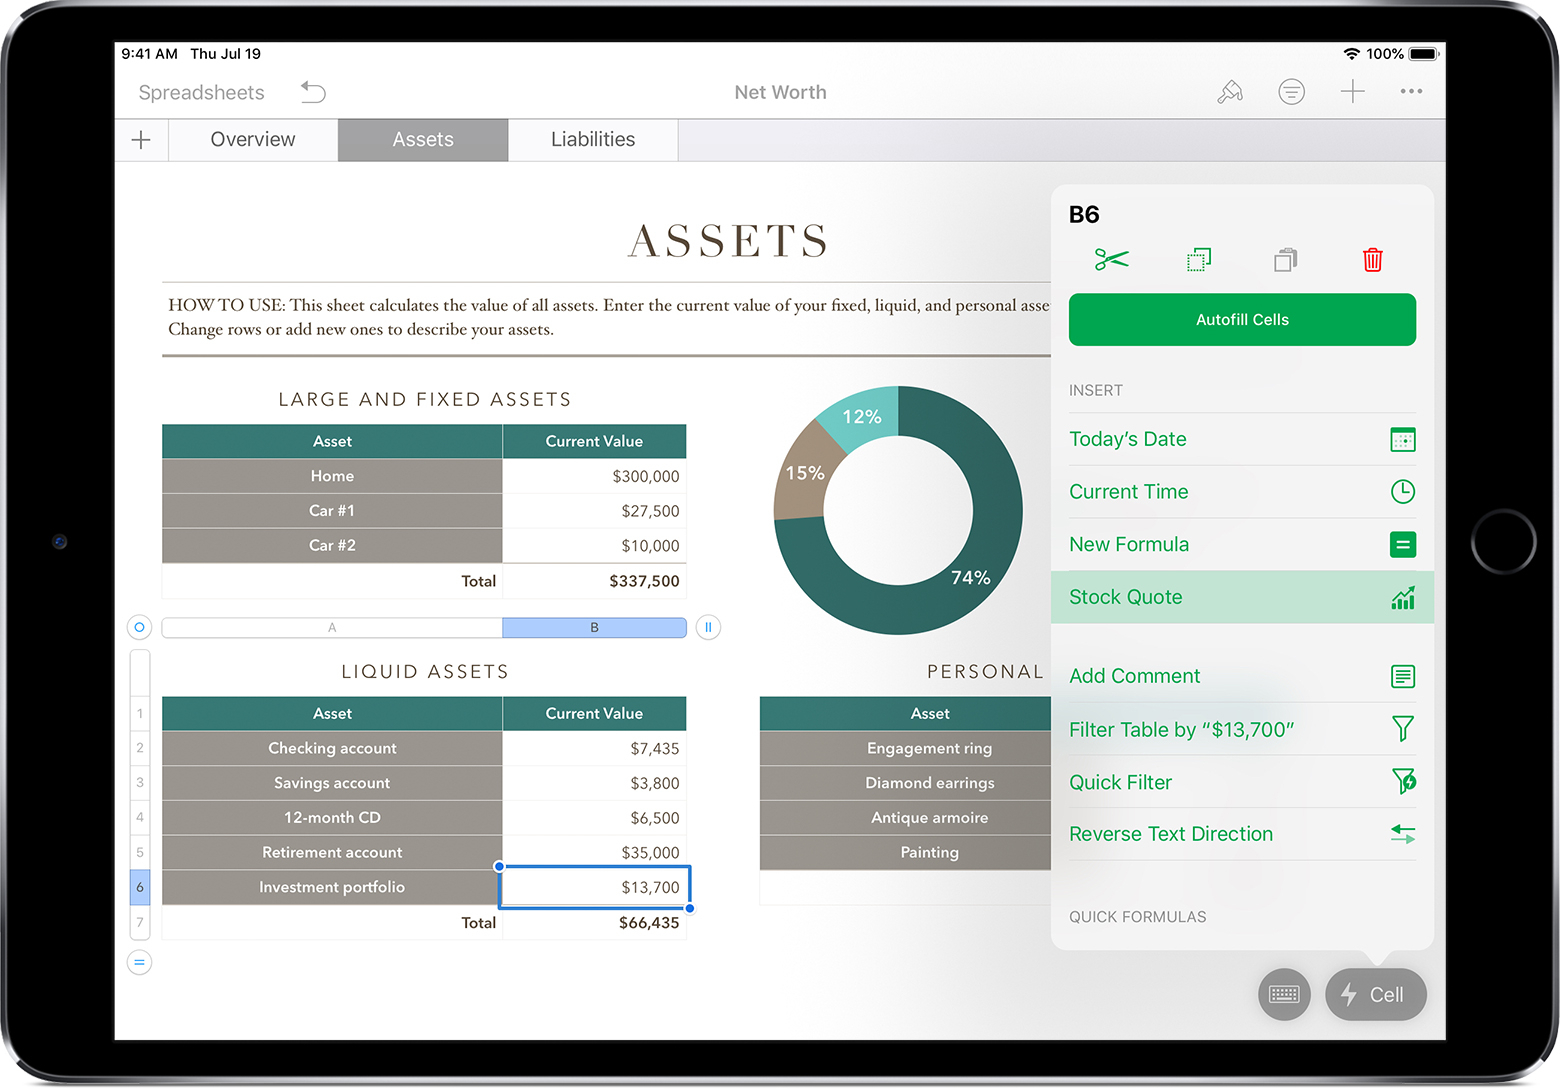 Apple Spreadsheet App For Ipad For Add Current Stock Quotes And Currency Exchange Rates Into Your